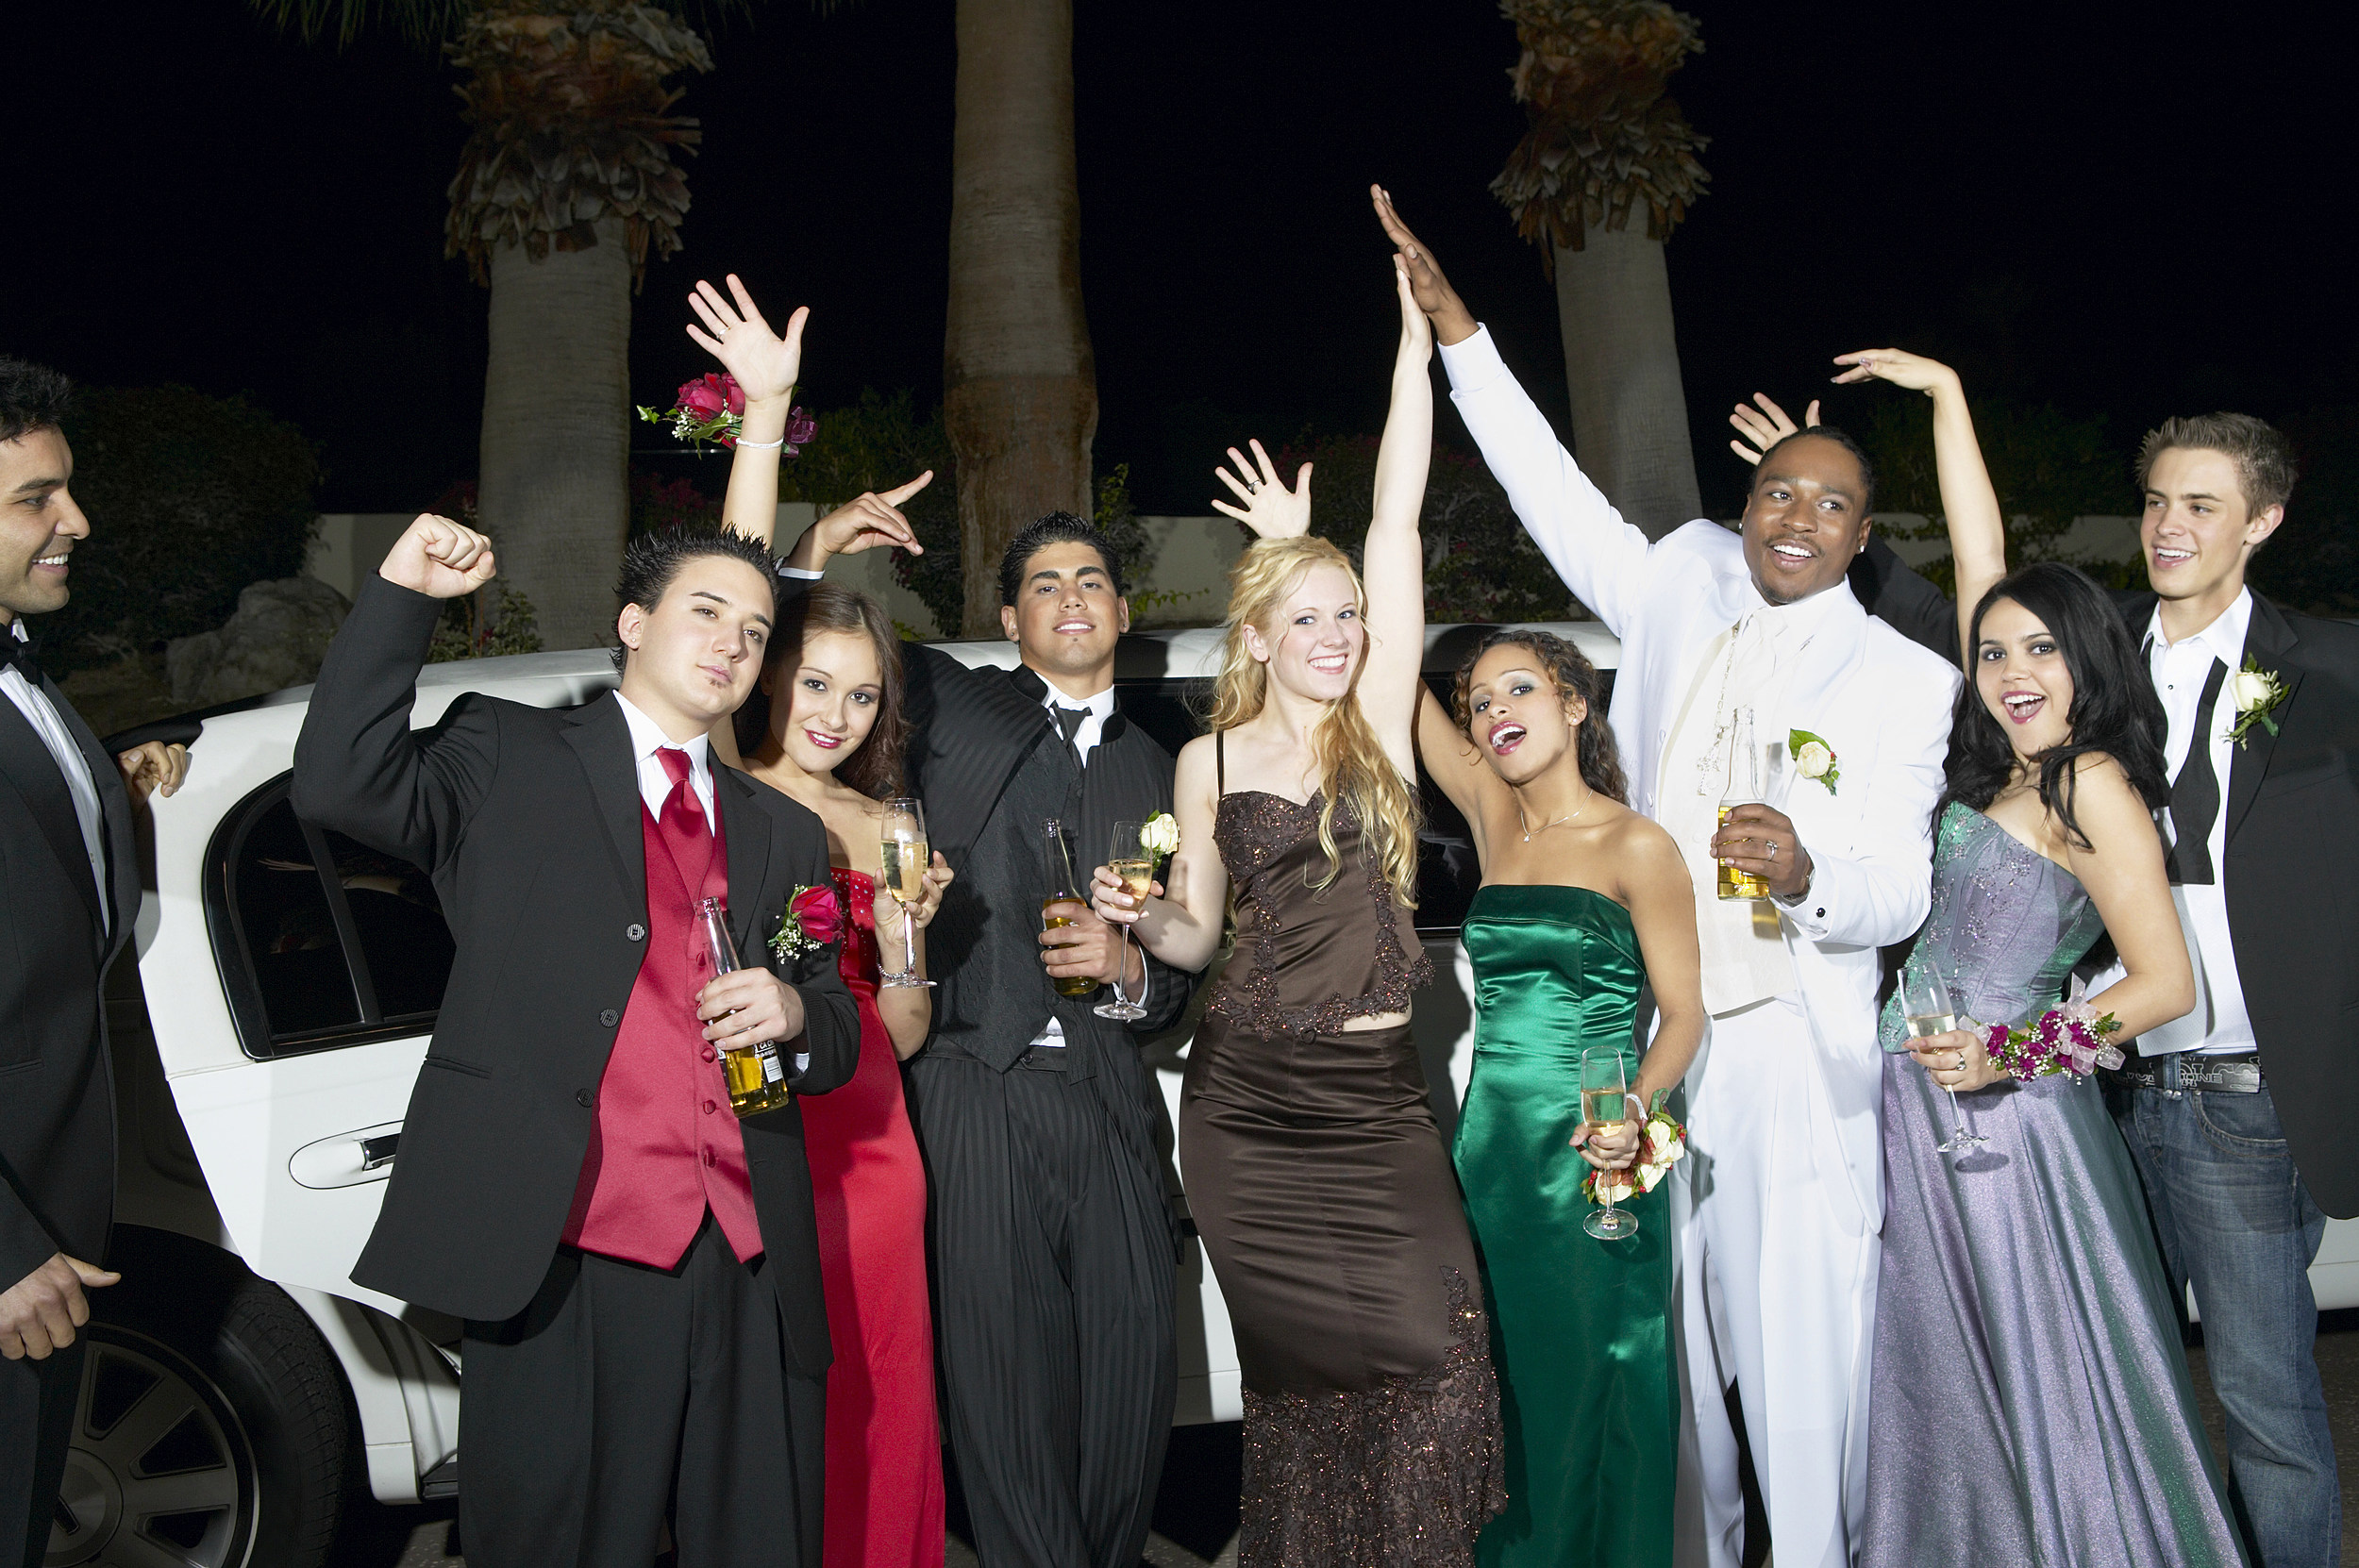 Limo Prom High School Bans The Use Of Limos For Prom